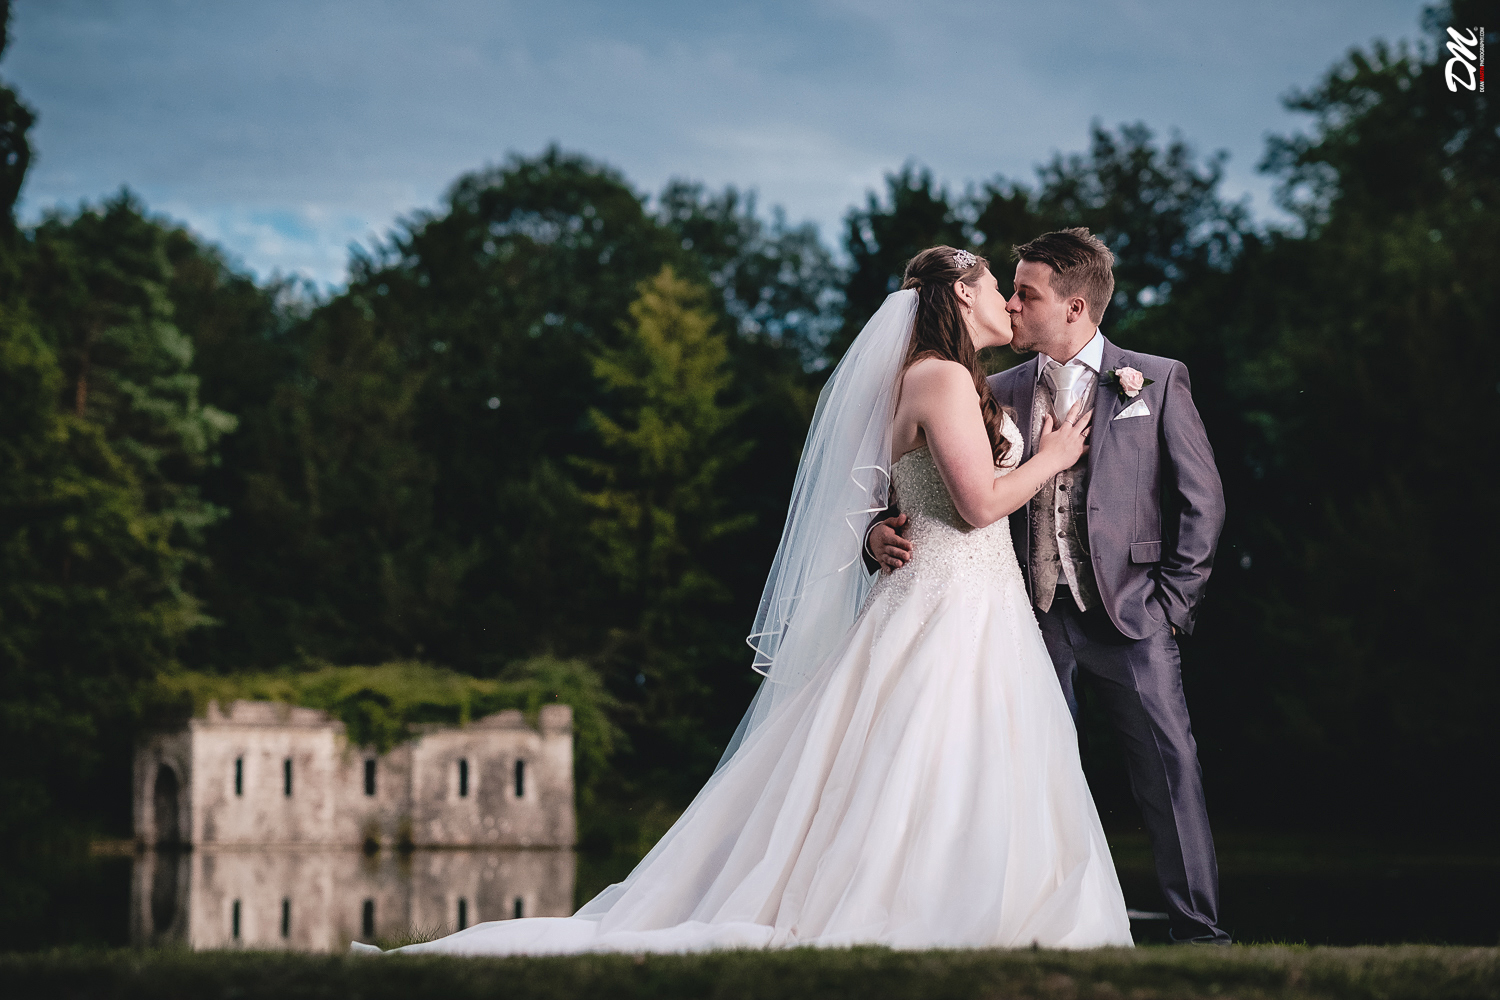 Fuji X Wedding Photography: Using Fuji Exclusively For A Wedding